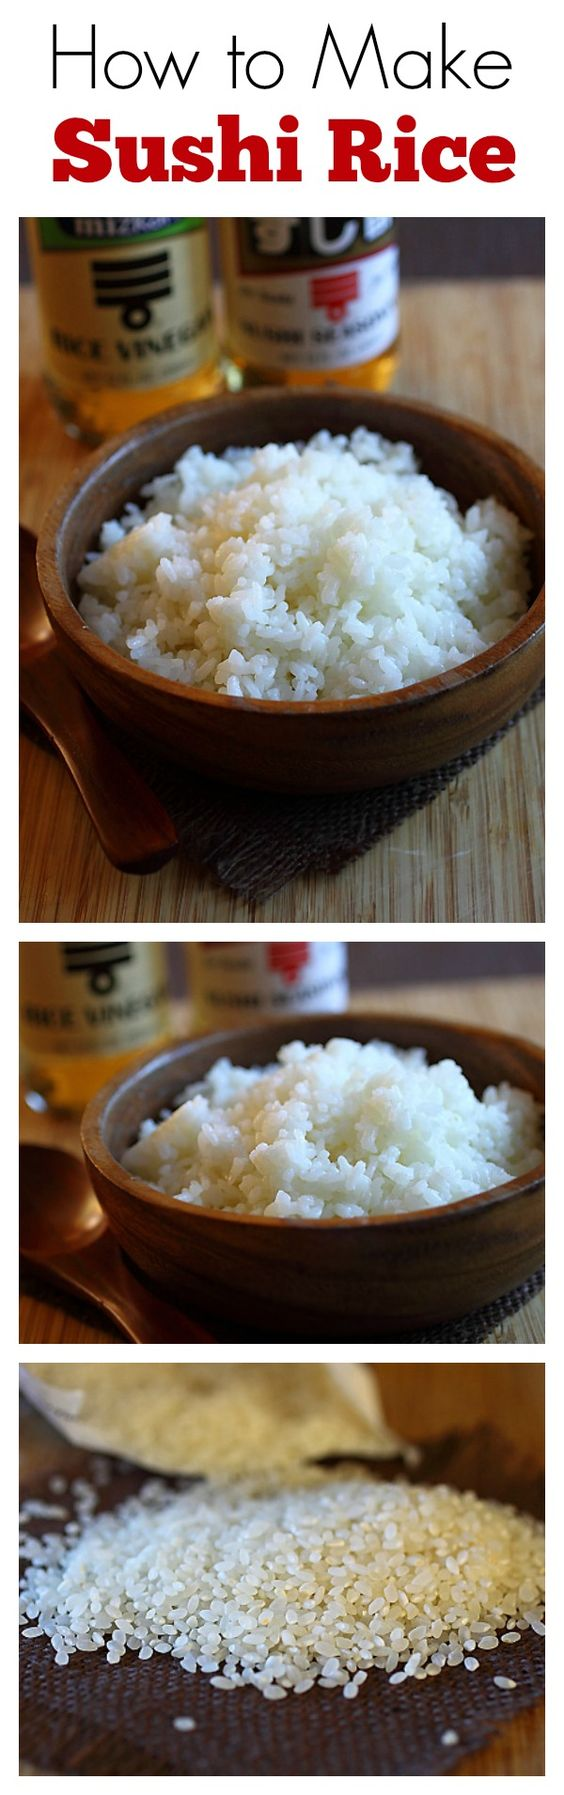 Japan - How to make sushi rice? The easiest and no-fuss recipe to make sushi rice from scratch | rasamalaysia.com